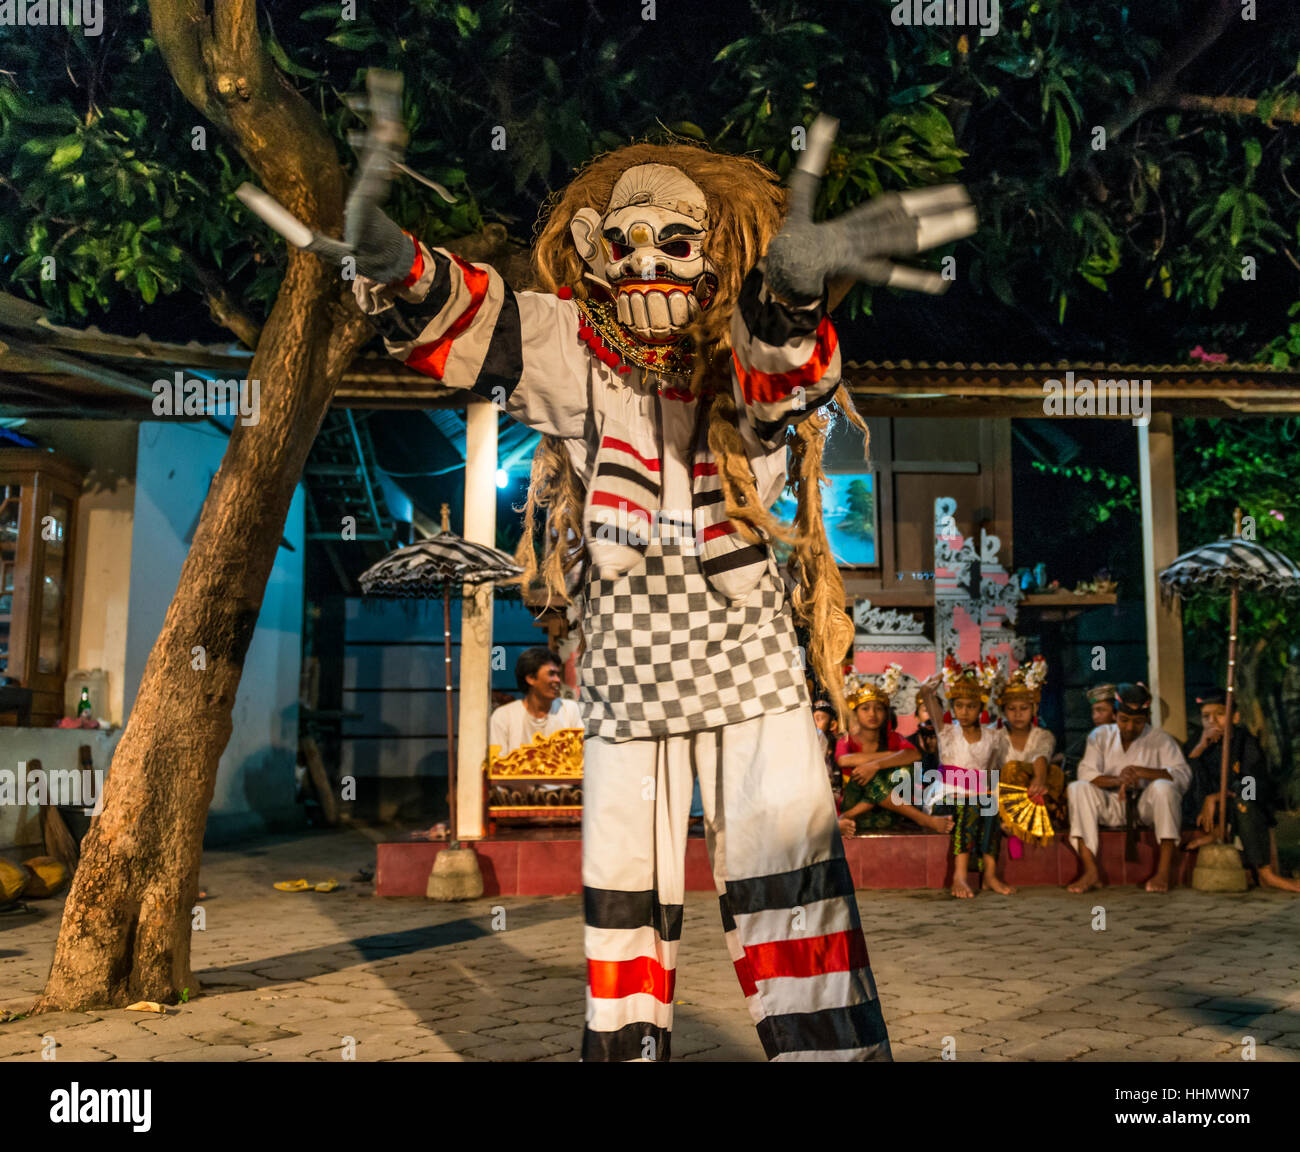 dressed up monster dancing traditional dance and clothing